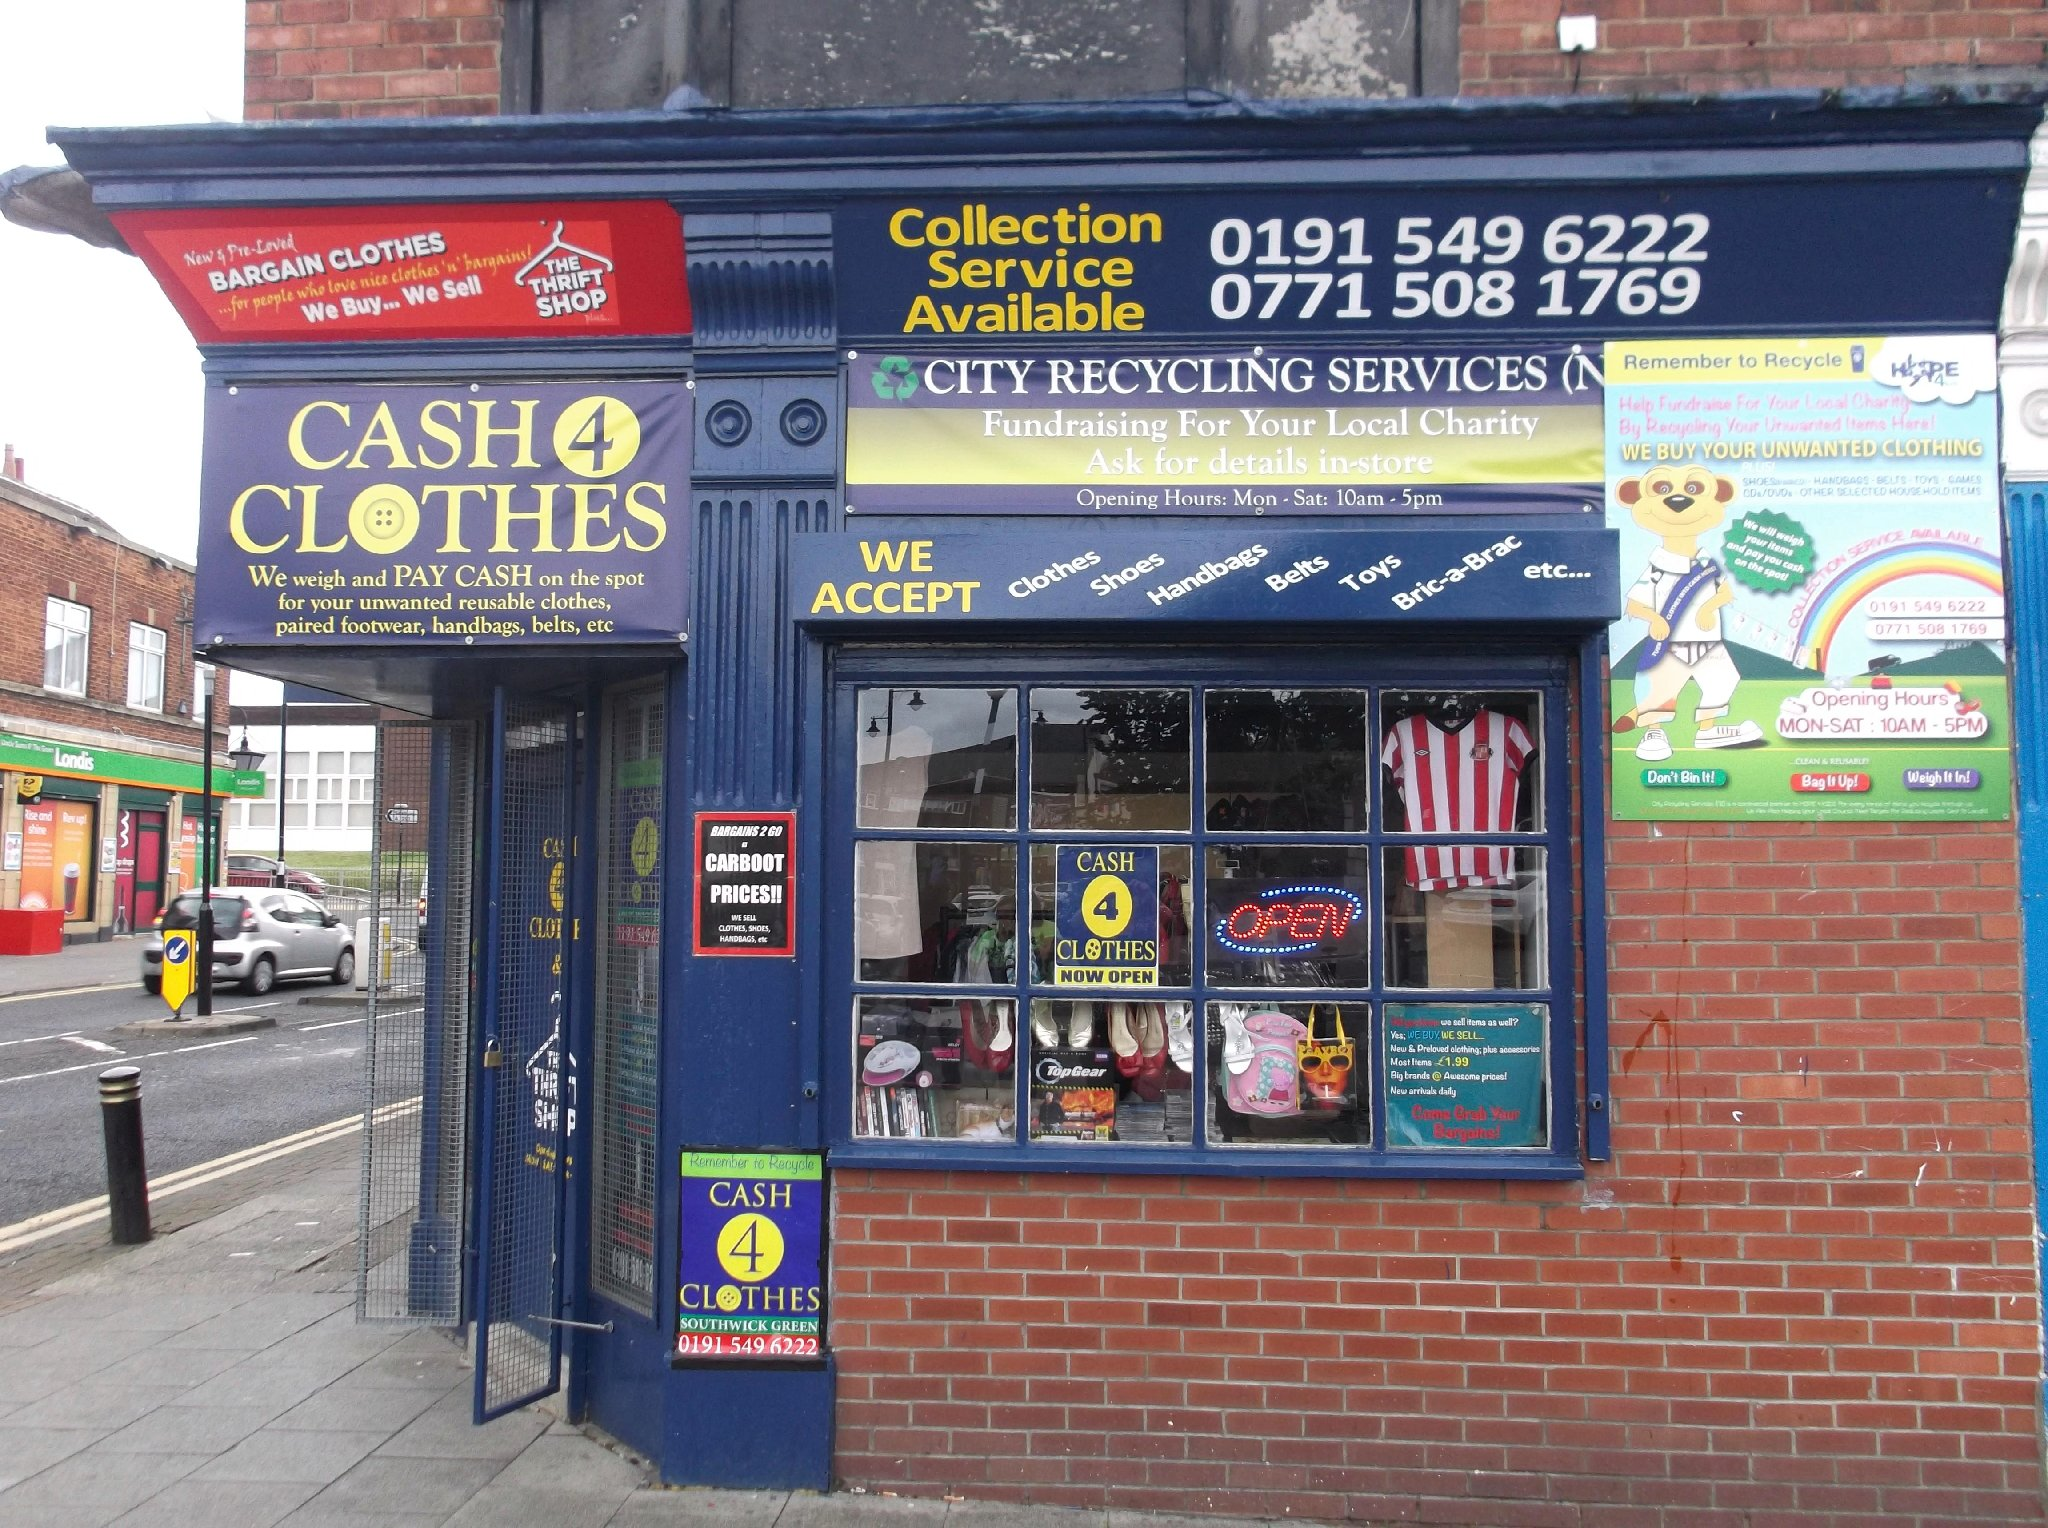 Cash 4 clothes in Sunderland, reviews by real people. Yelp is a fun and easy way to find, recommend and talk about what's great and not so great in Sunderland and beyond.